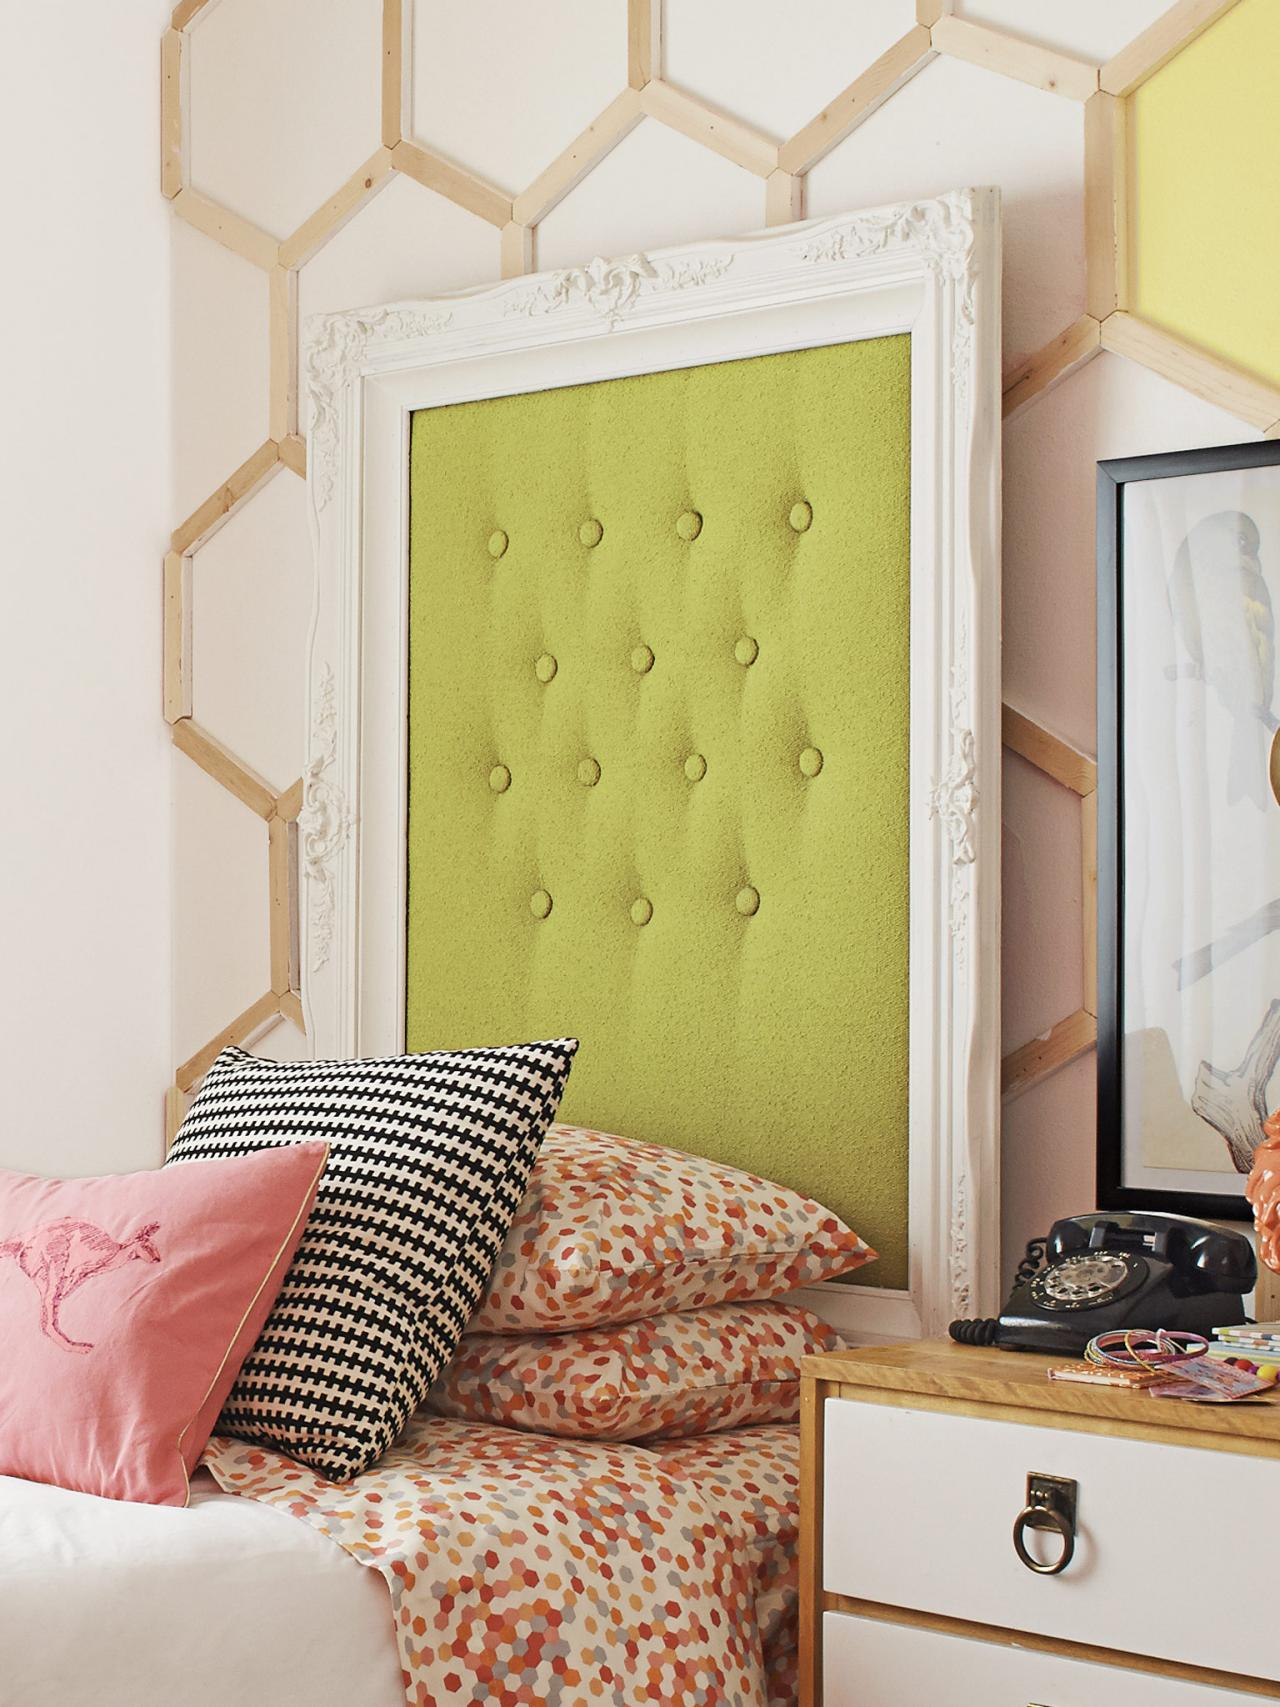 How to Make a Picture Frame Headboard | HGTV